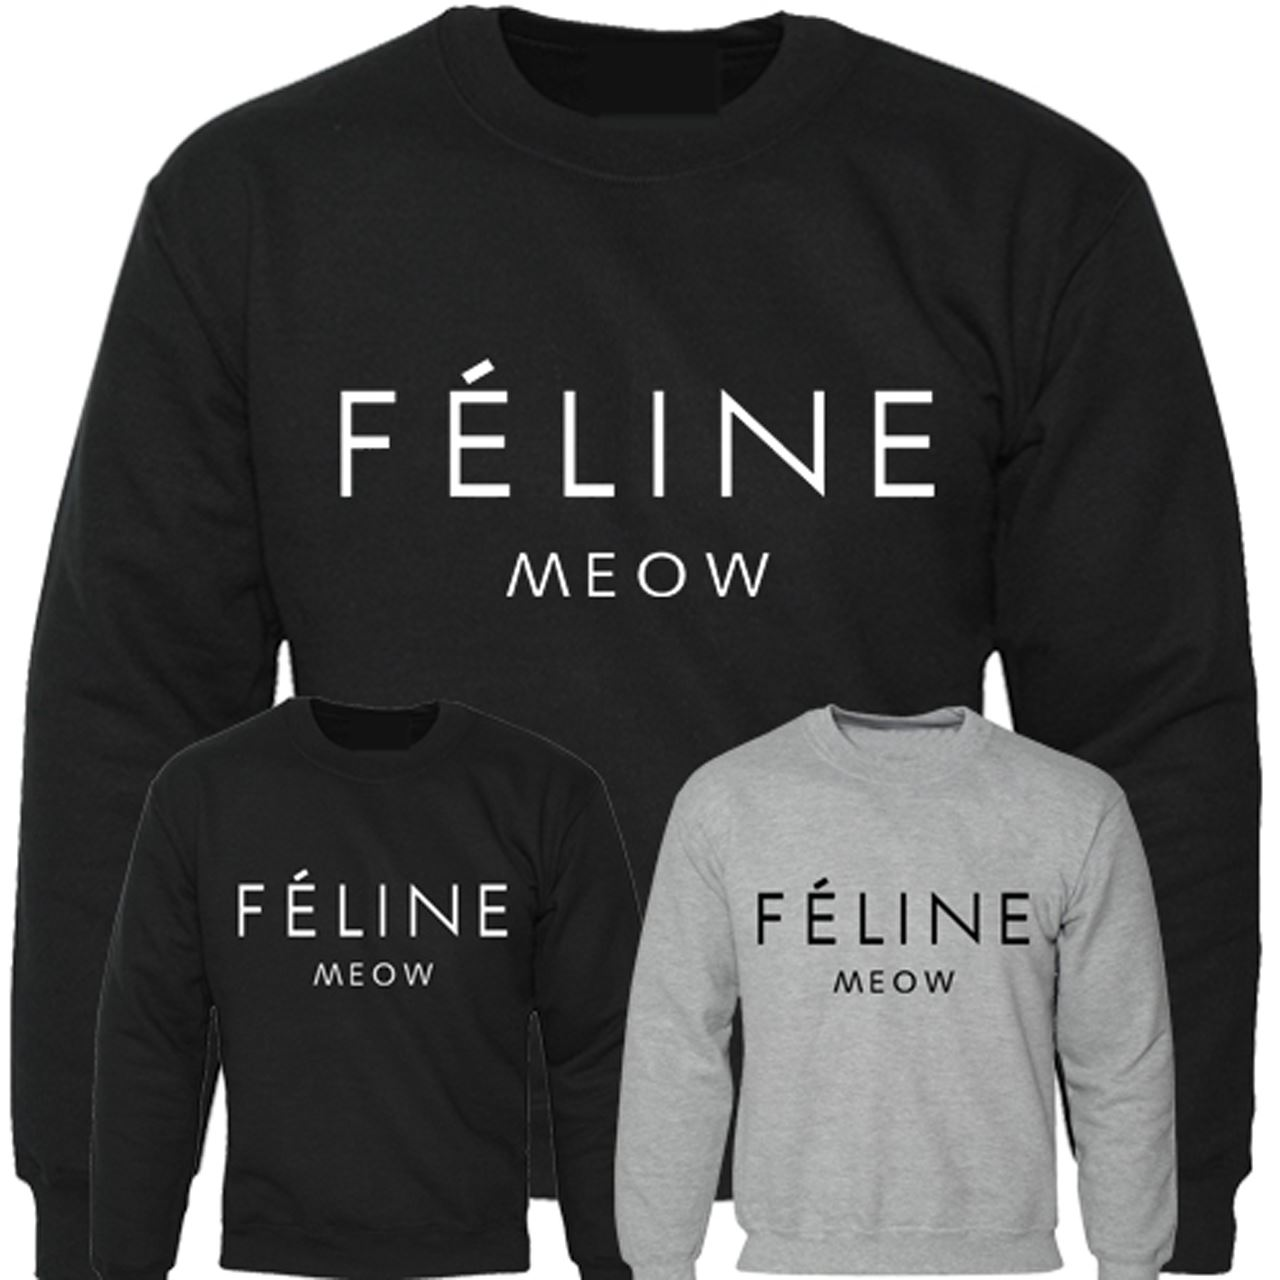 Mens-Boys-Unisex-Feline-Meow-Swag-Sweater-Hoodie-Sweat-Shirt-All-Sizes